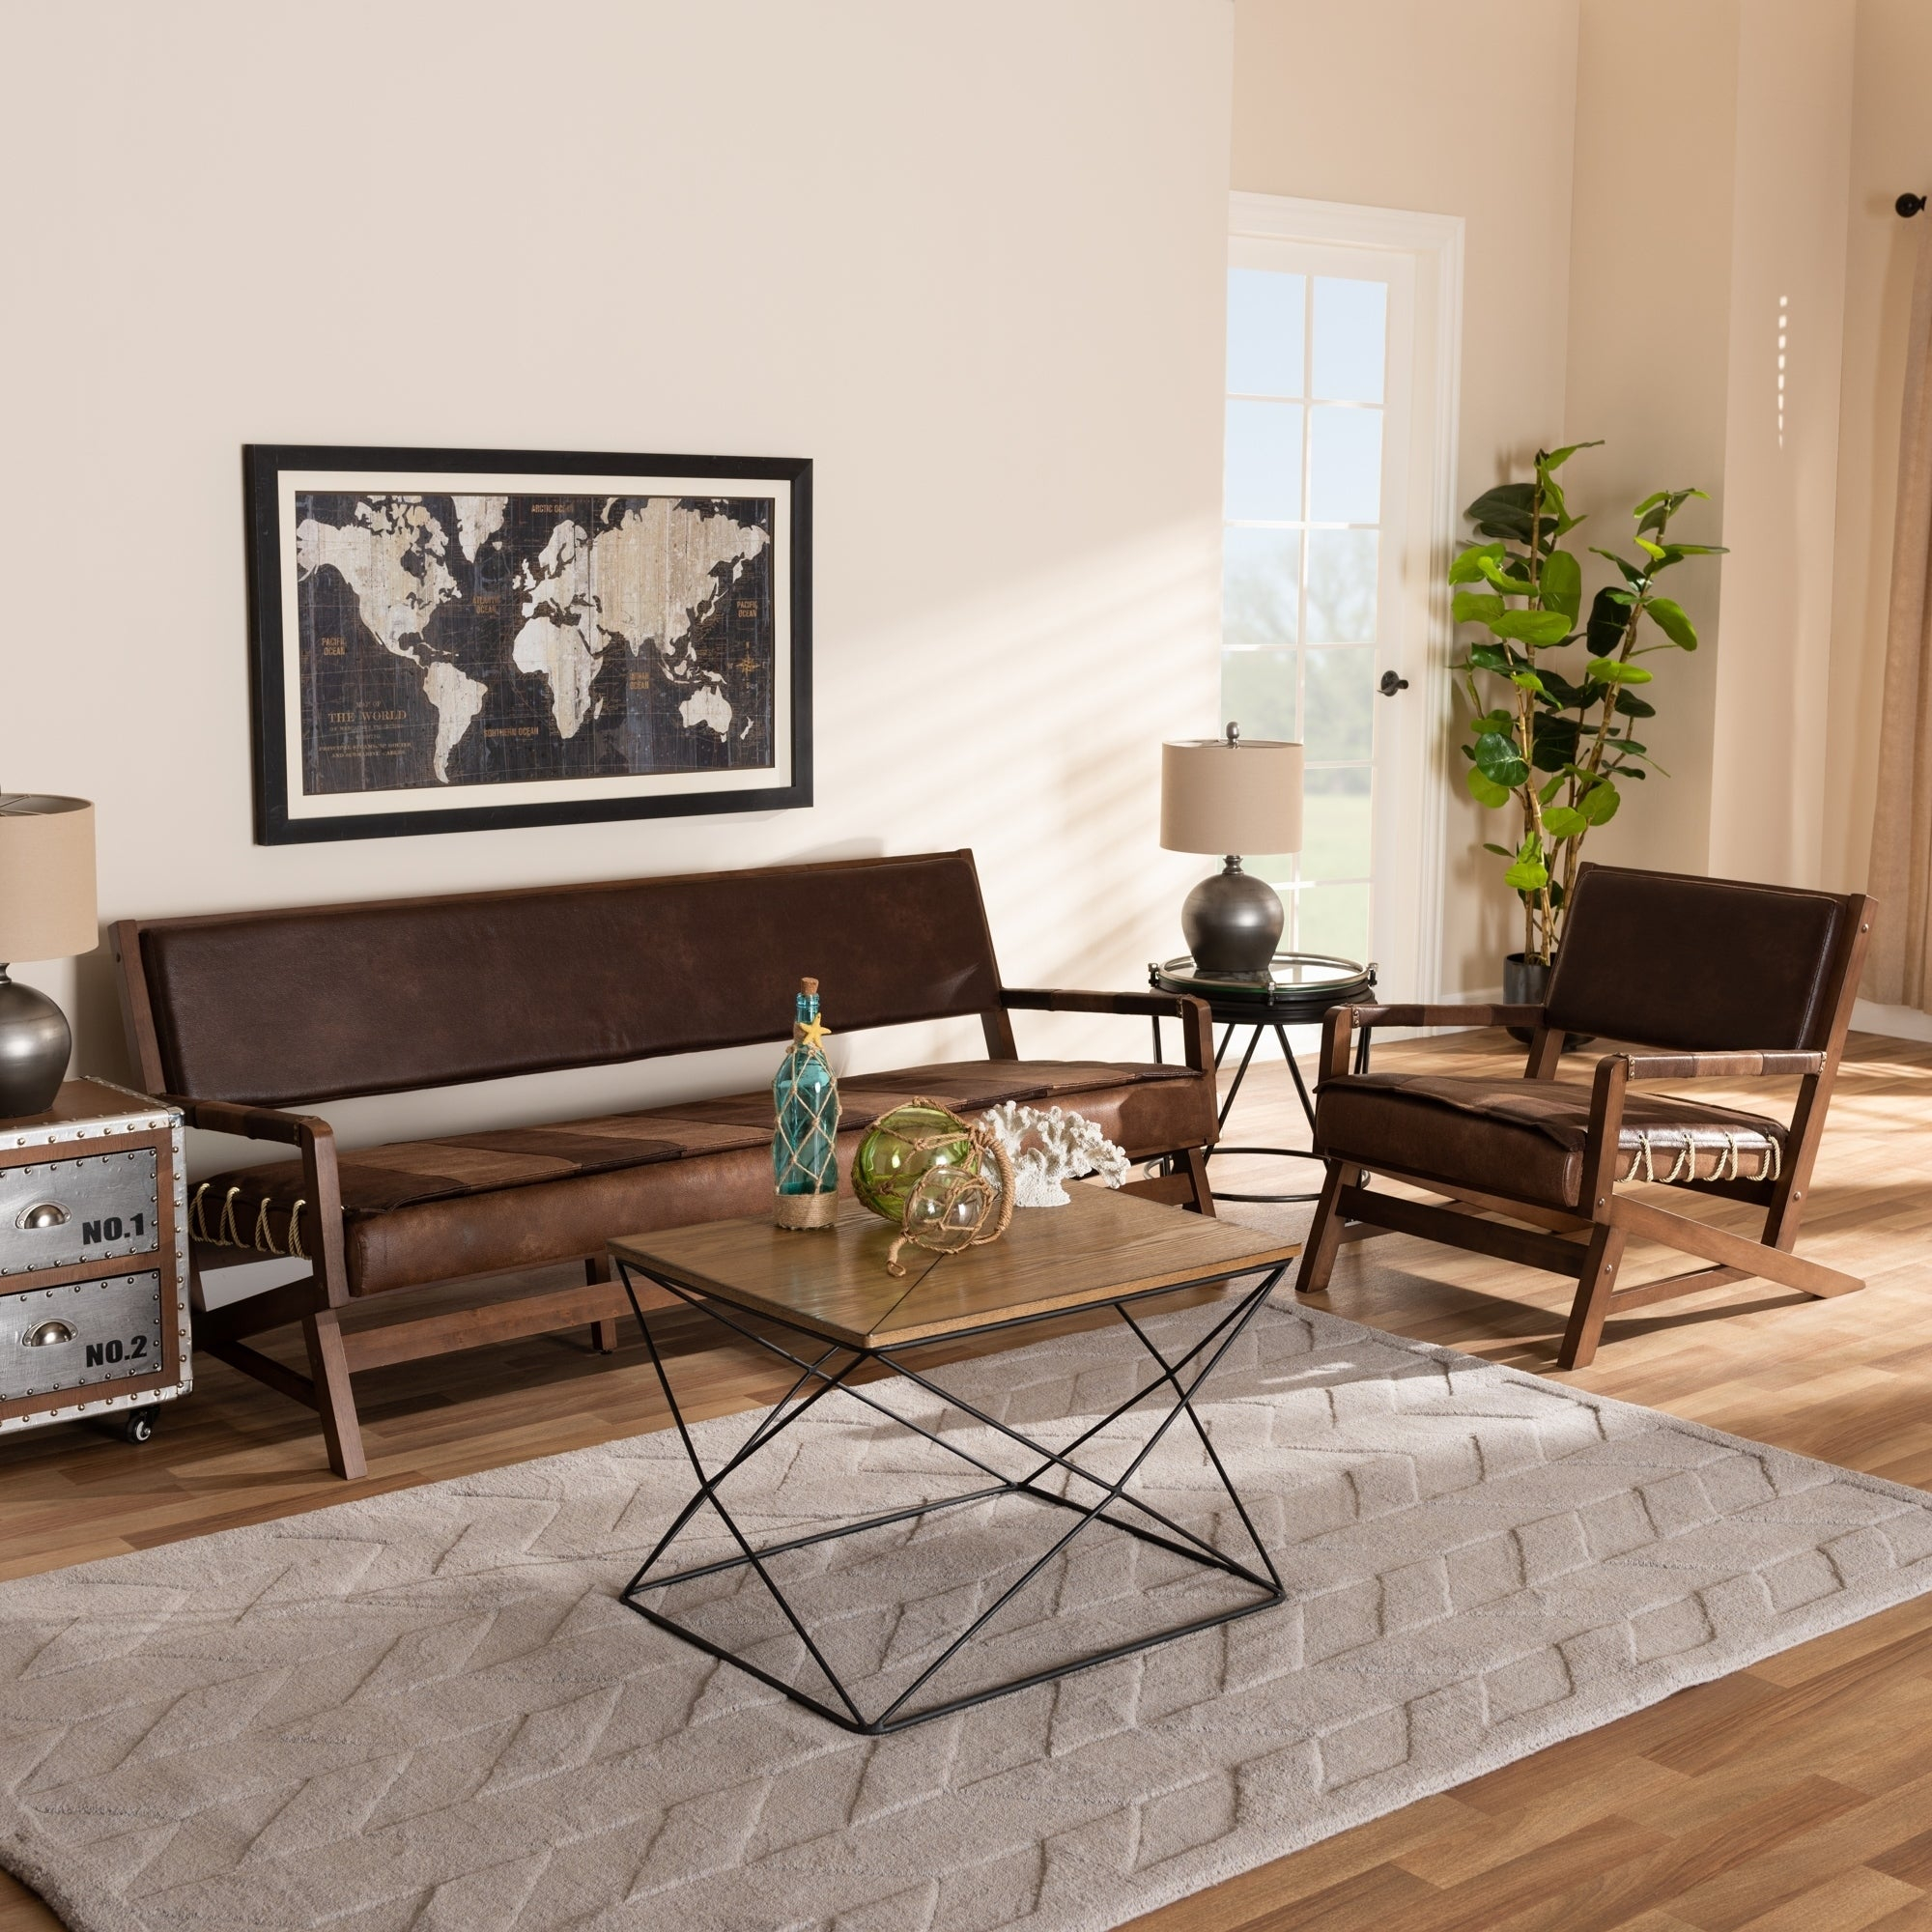 Rustic Brown Faux Leather 2 Piece Living Room Set intended for 15 Some of the Coolest Designs of How to Build Rustic Living Room Sets